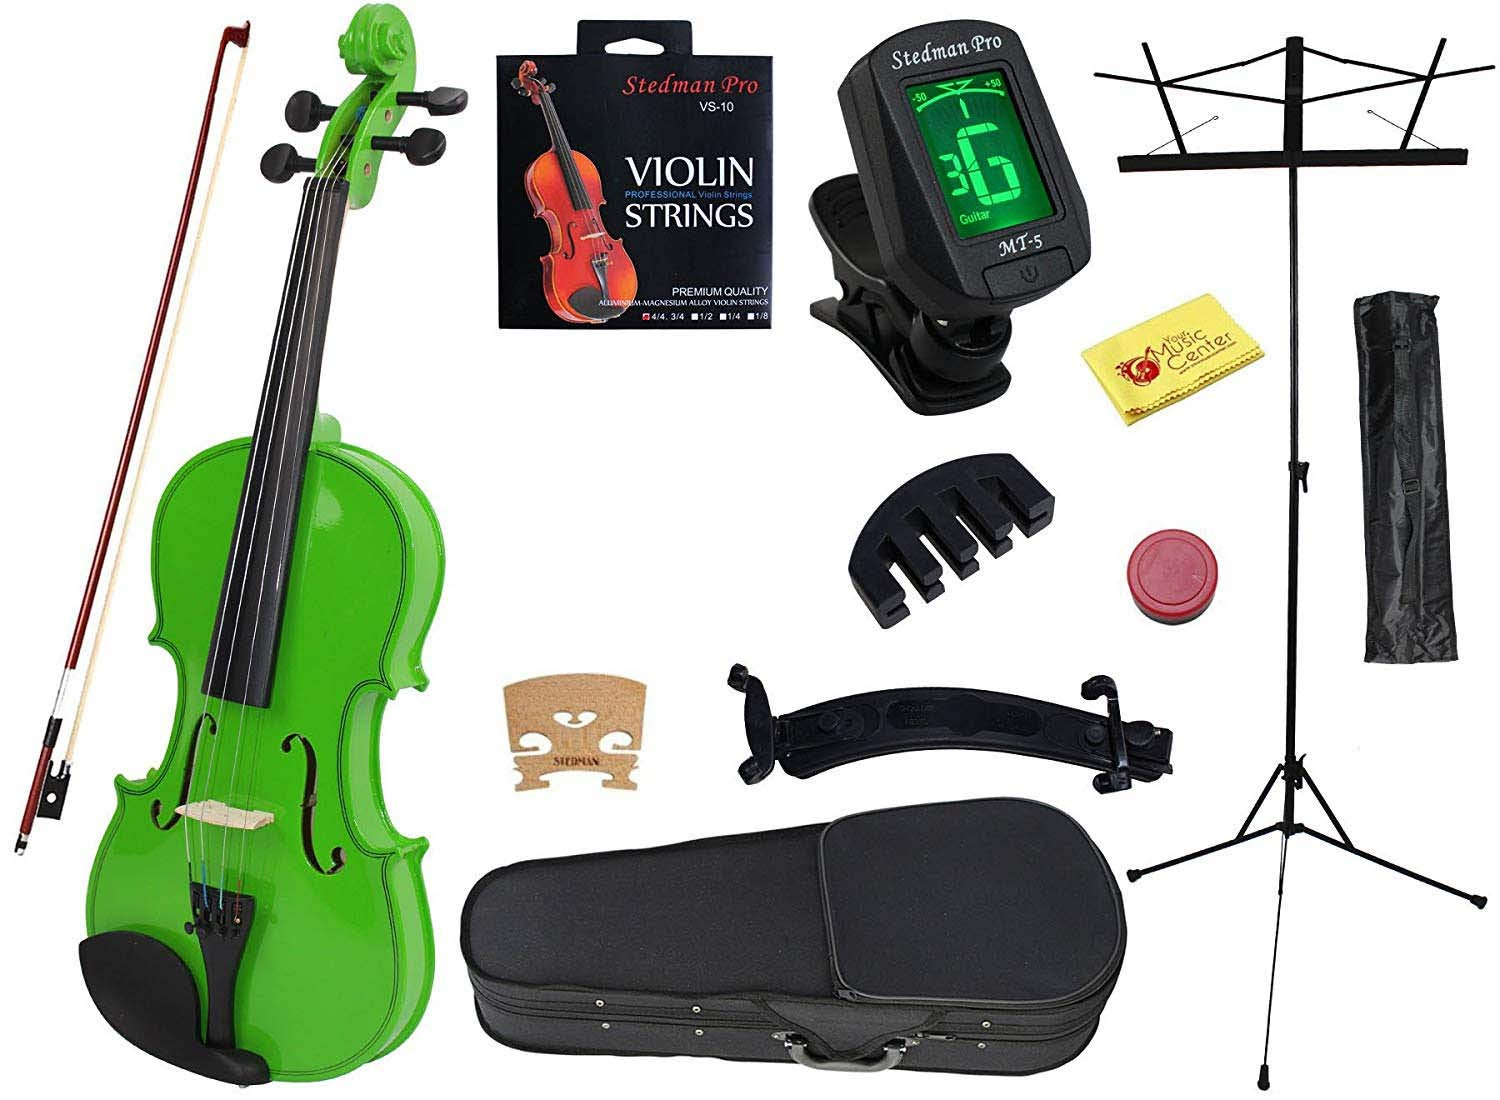 YMC 4/4 Full Size Handcrafted Solid Wood Student Violin Starter Kits (w/ Hard Case, Bow, Music Stand, Electronic Tuner, Bow Collimator, Shoulder Rest, Mute, Extra Strings, Polish Cloth, Rosin), Green